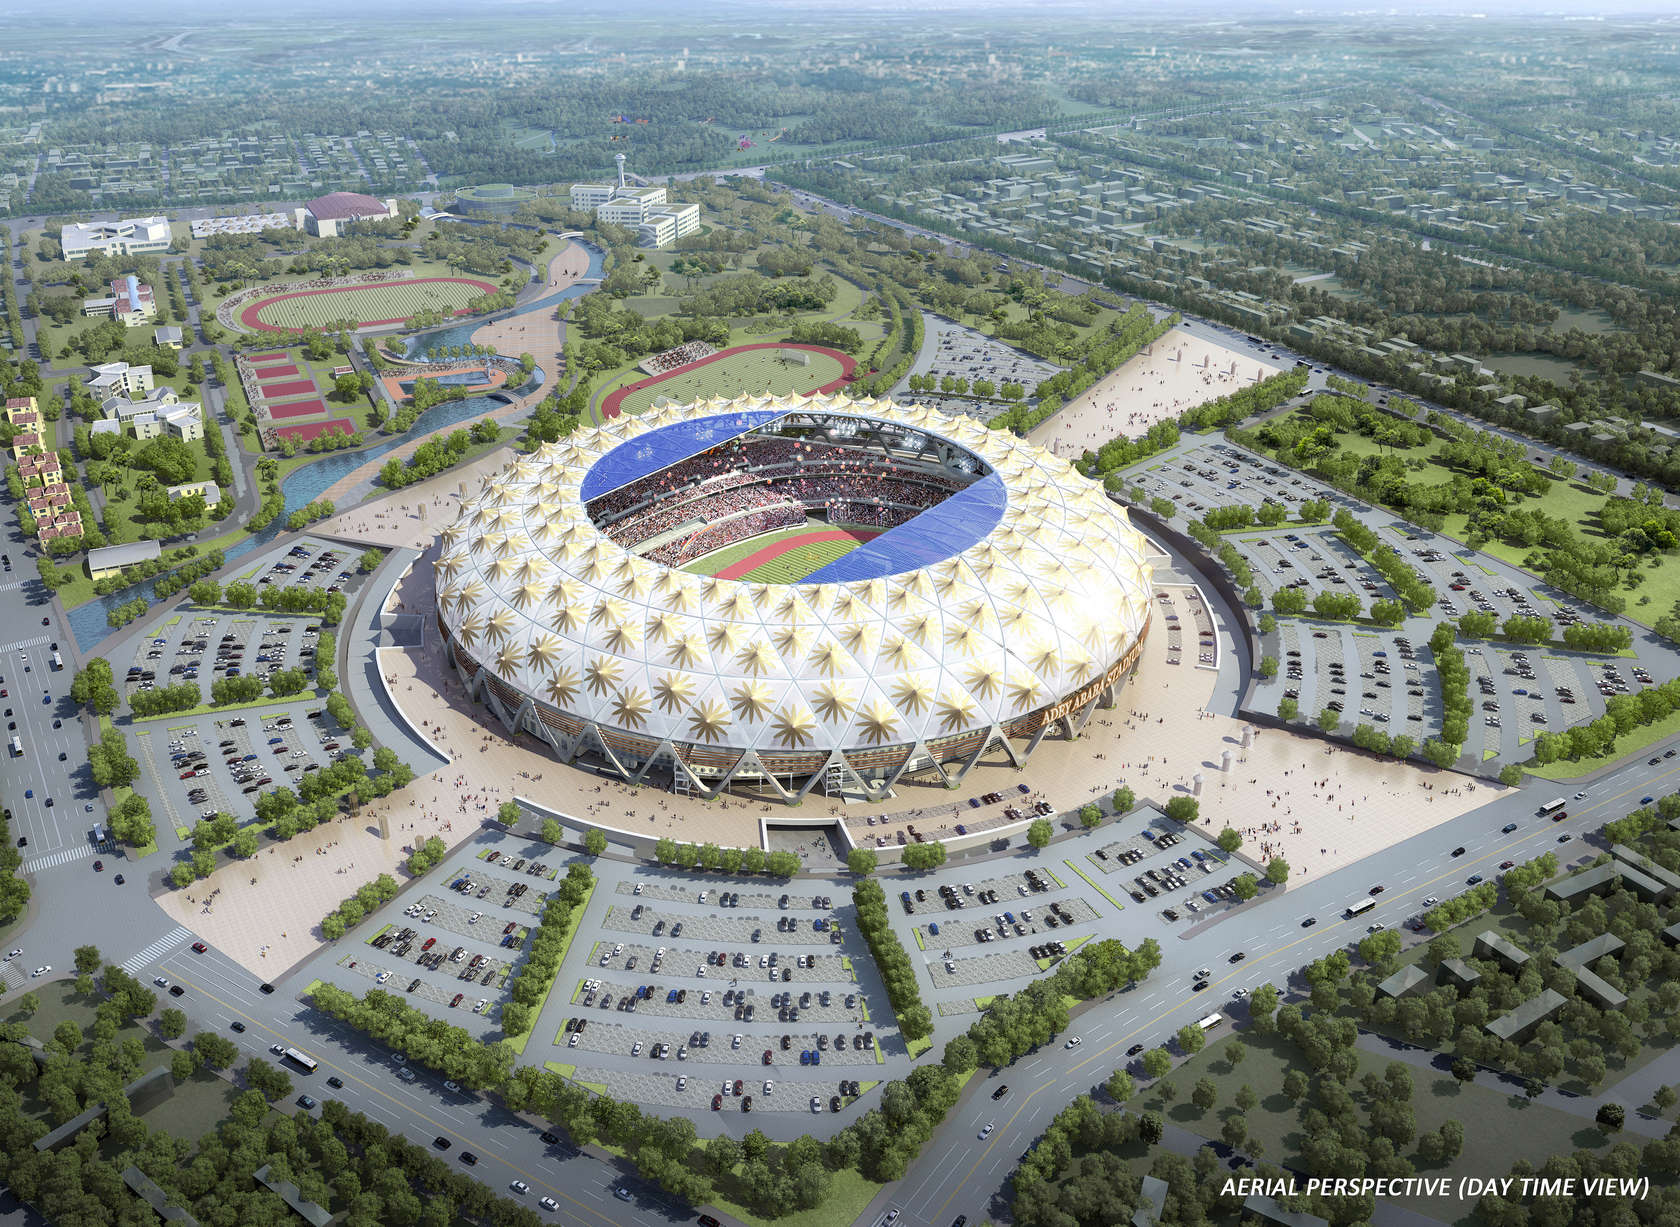 stadiumdb.com/pic-projects/addis_ababa_national_stadium/addis_ababa_national_stadium04.jpg